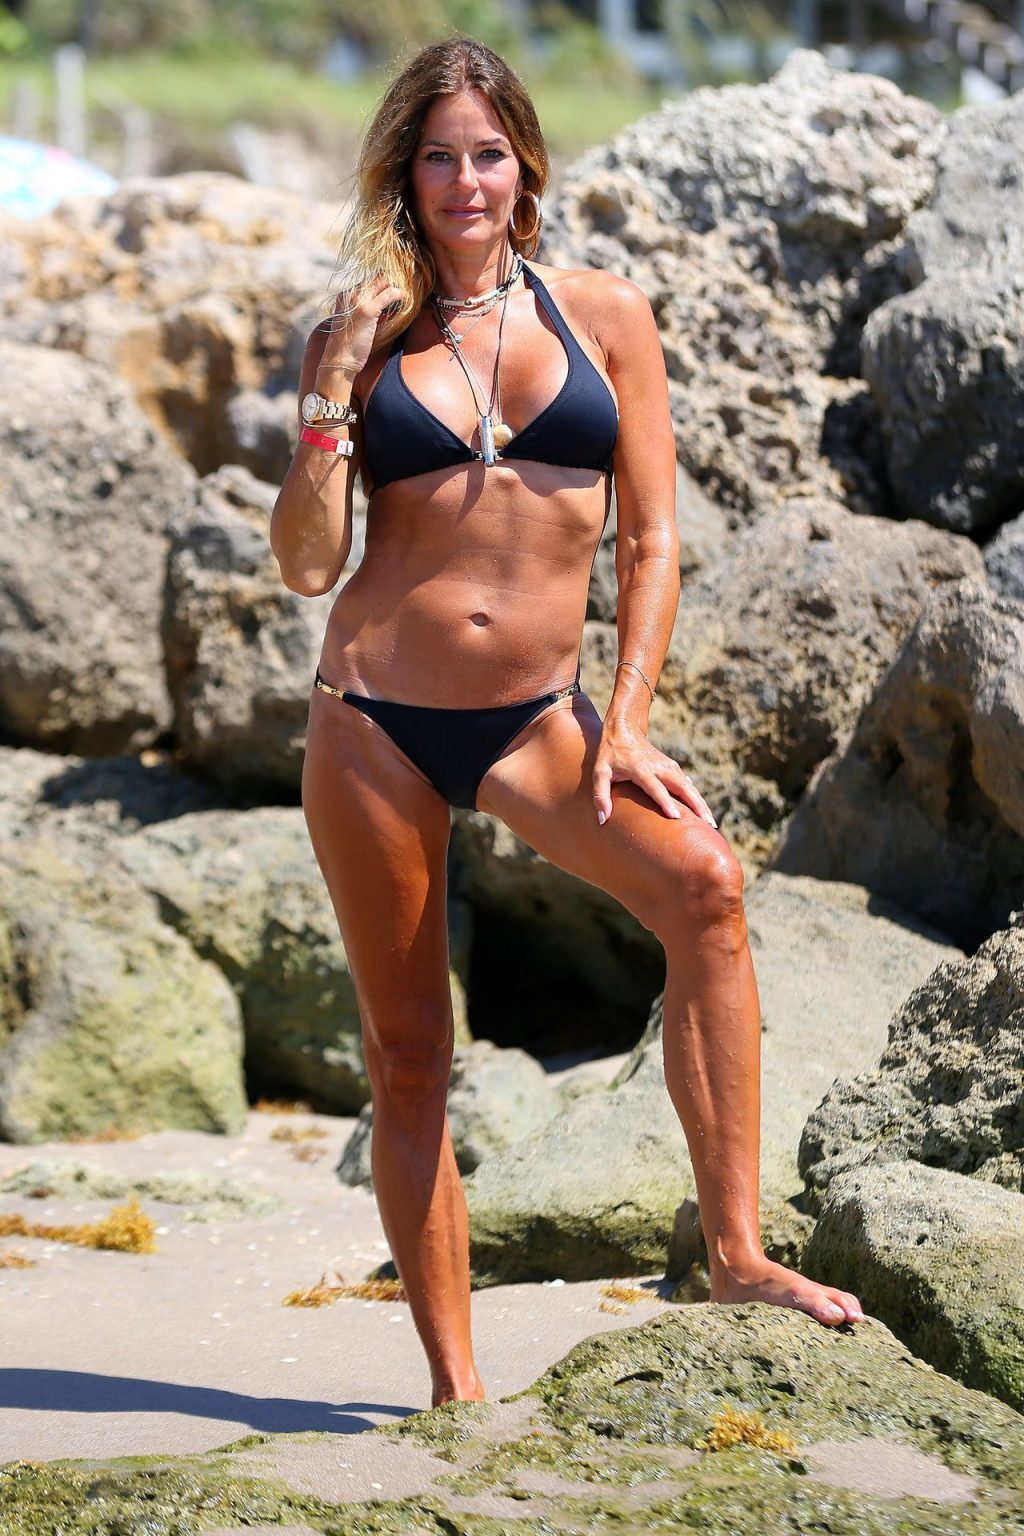 Kelly Bensimon Shows Off Her Toned Summer Body in a Skimpy Bikini (38 Photos)